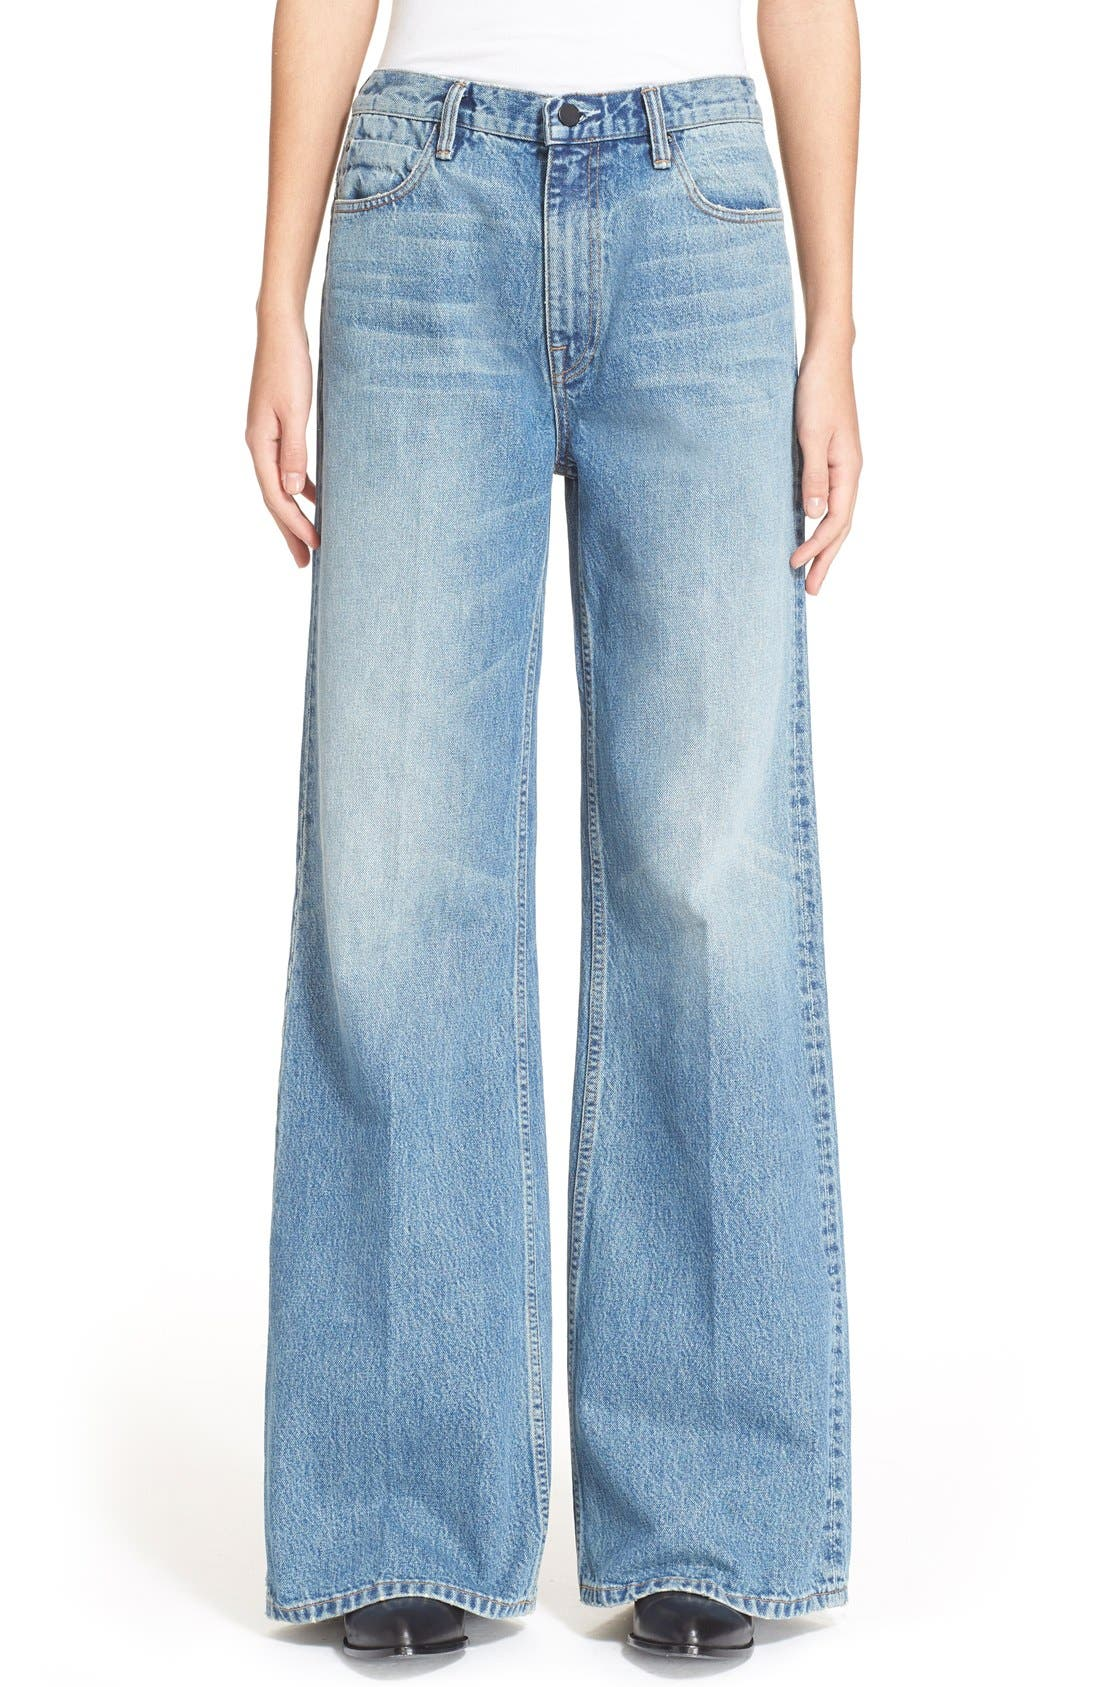 Denim x Alexander Wang Rave Wide Leg Jeans,                             Main thumbnail 1, color,                             453